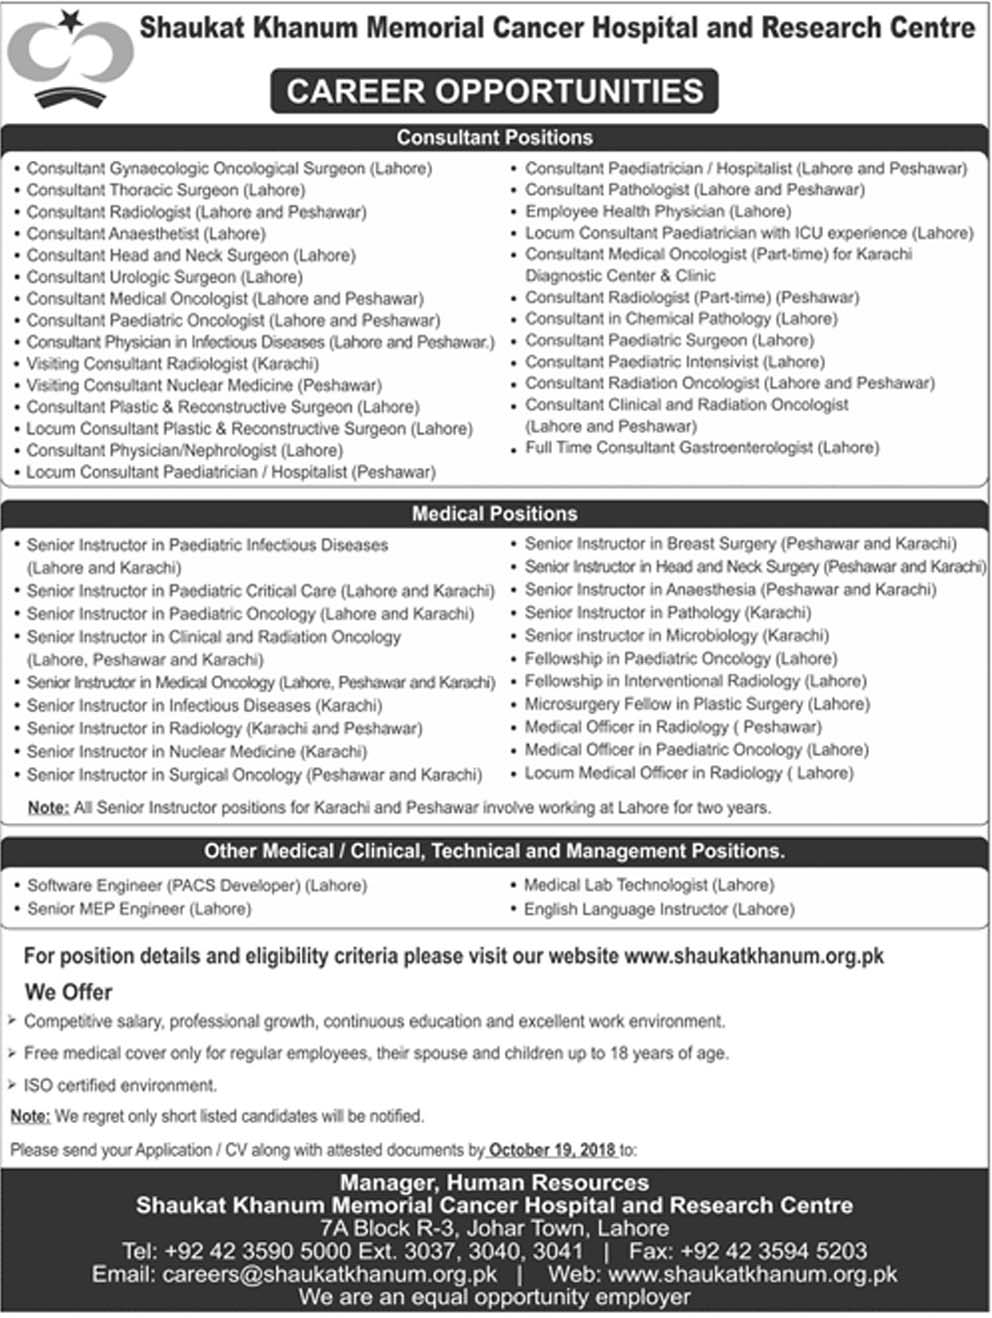 Latest Vacancies Announced in Shaukat Khanum Memorial Cancer Hospital Lahore 9 October 2018 - Naya Pakistan